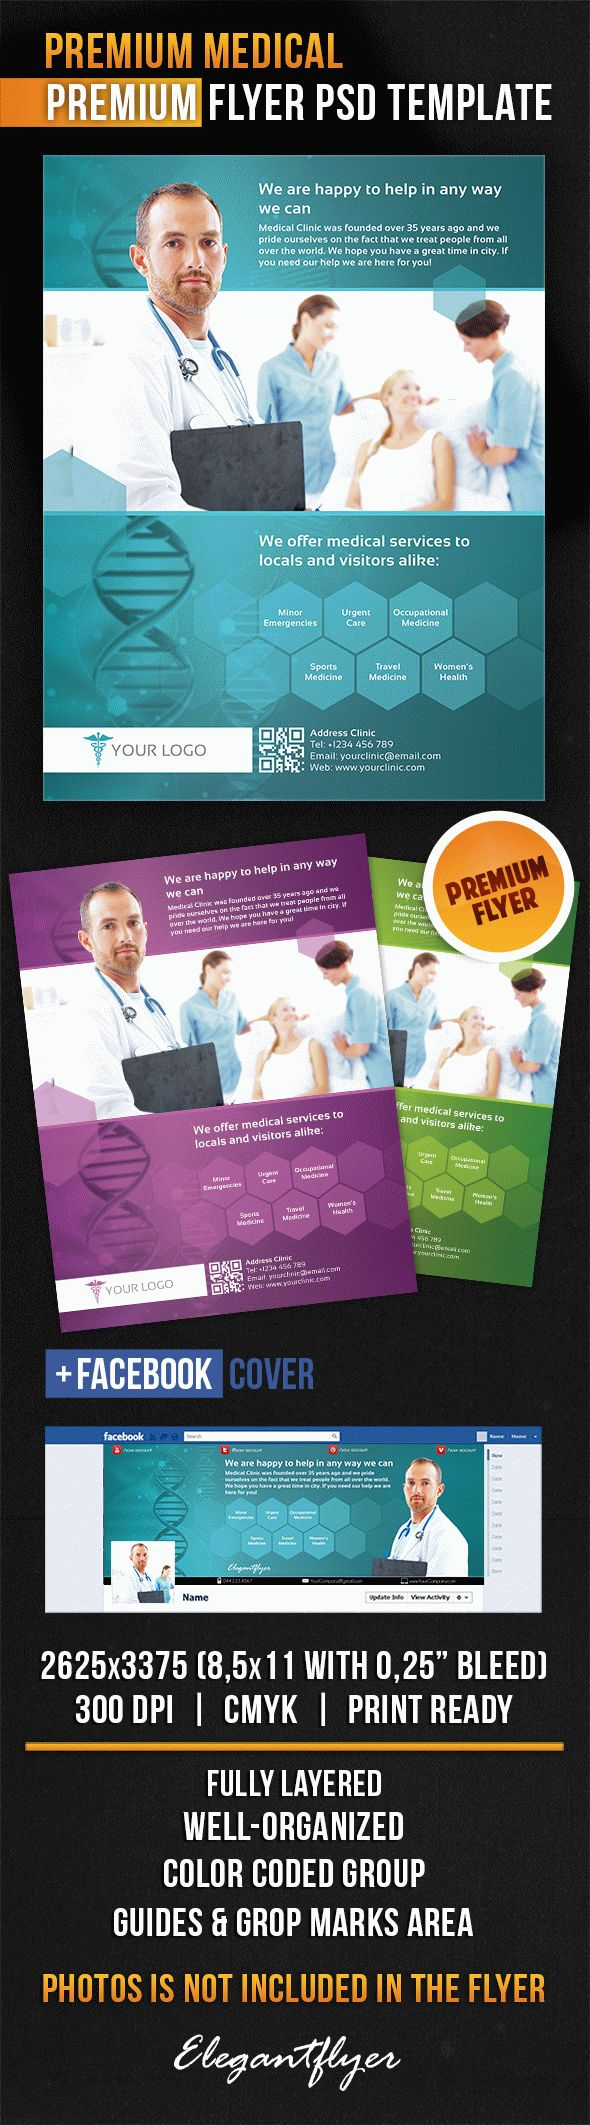 Premium Medical – Flyer PSD Template + Facebook Cover